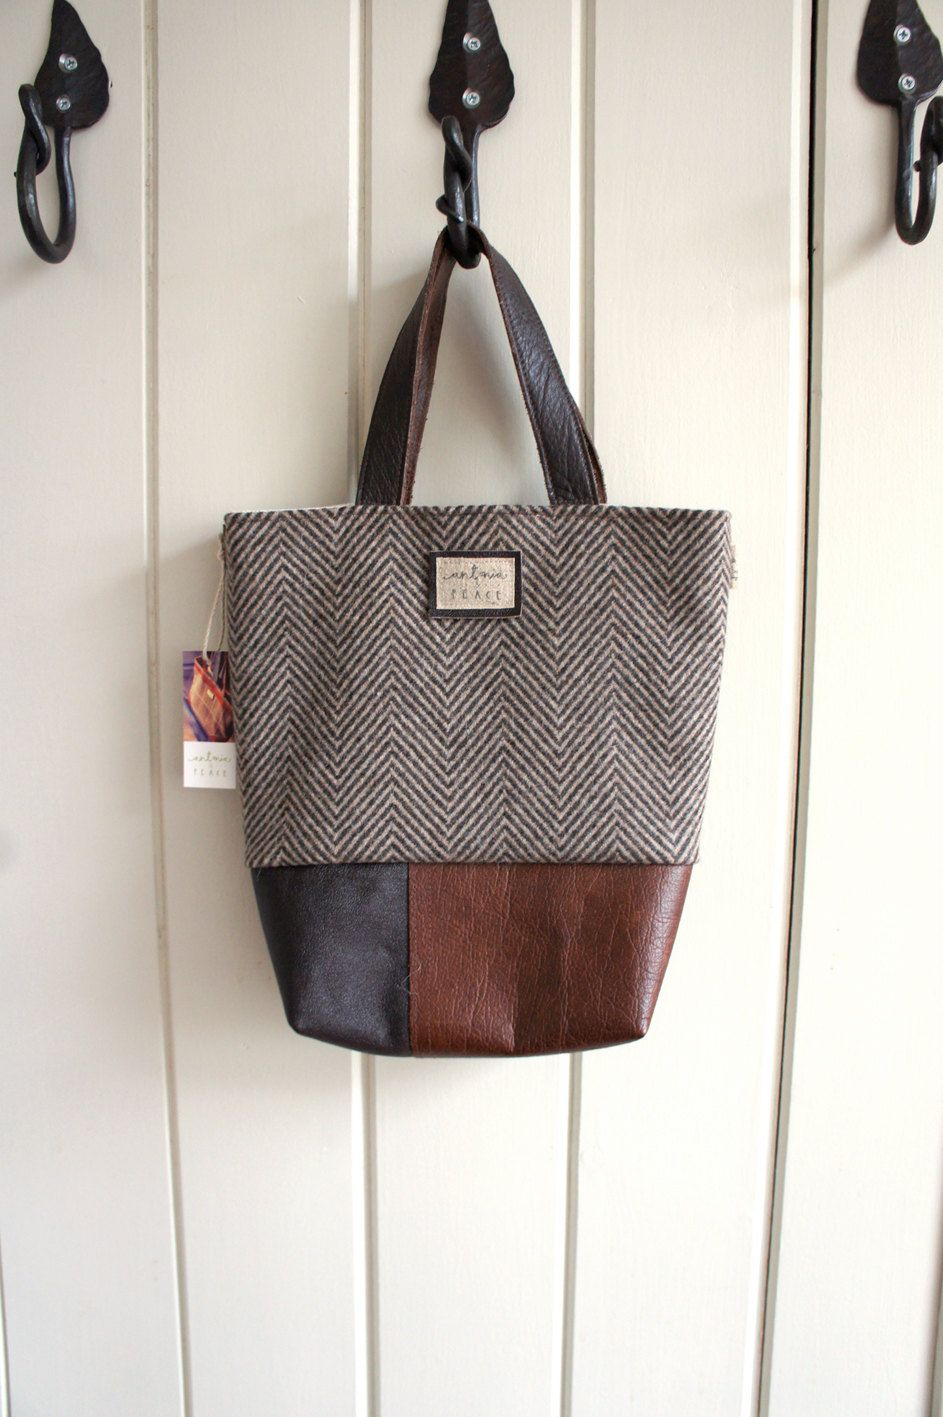 d4d765d9a1 Herringbone Tweed and Soft Brown Leather HandBag Purse. £70.00